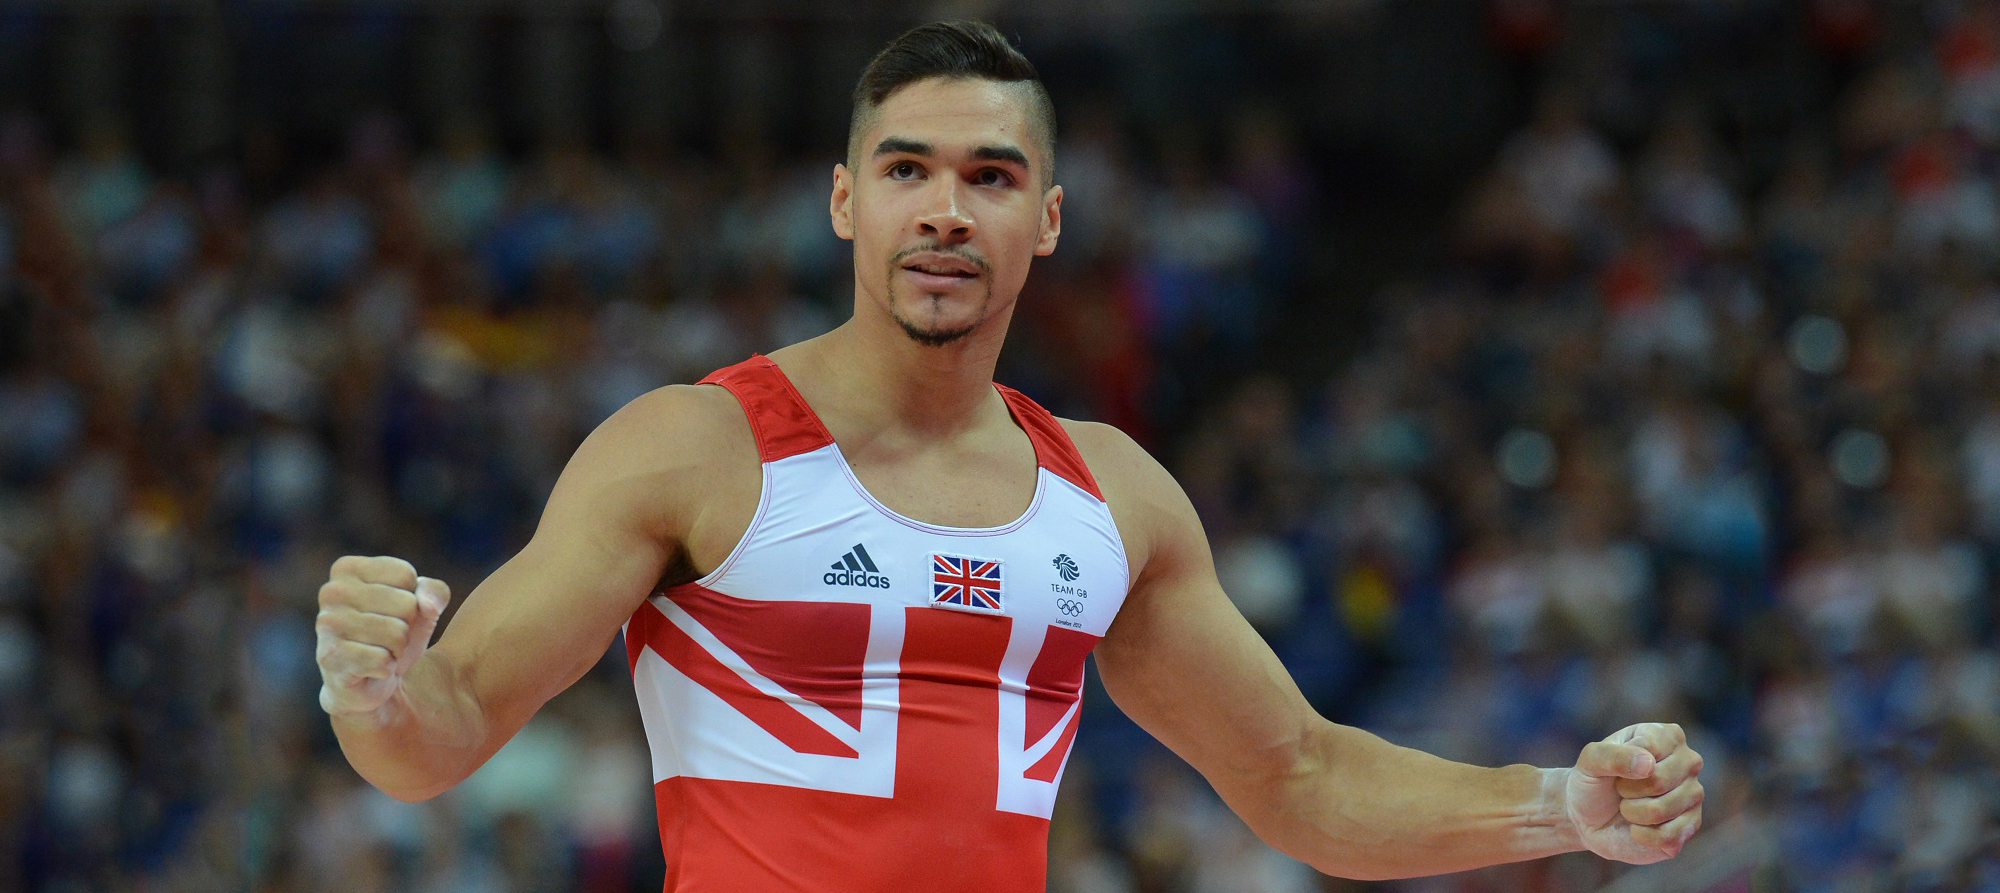 Photo of Nyálcsorgató – Louis Smith, a vetkőzős olimpikon